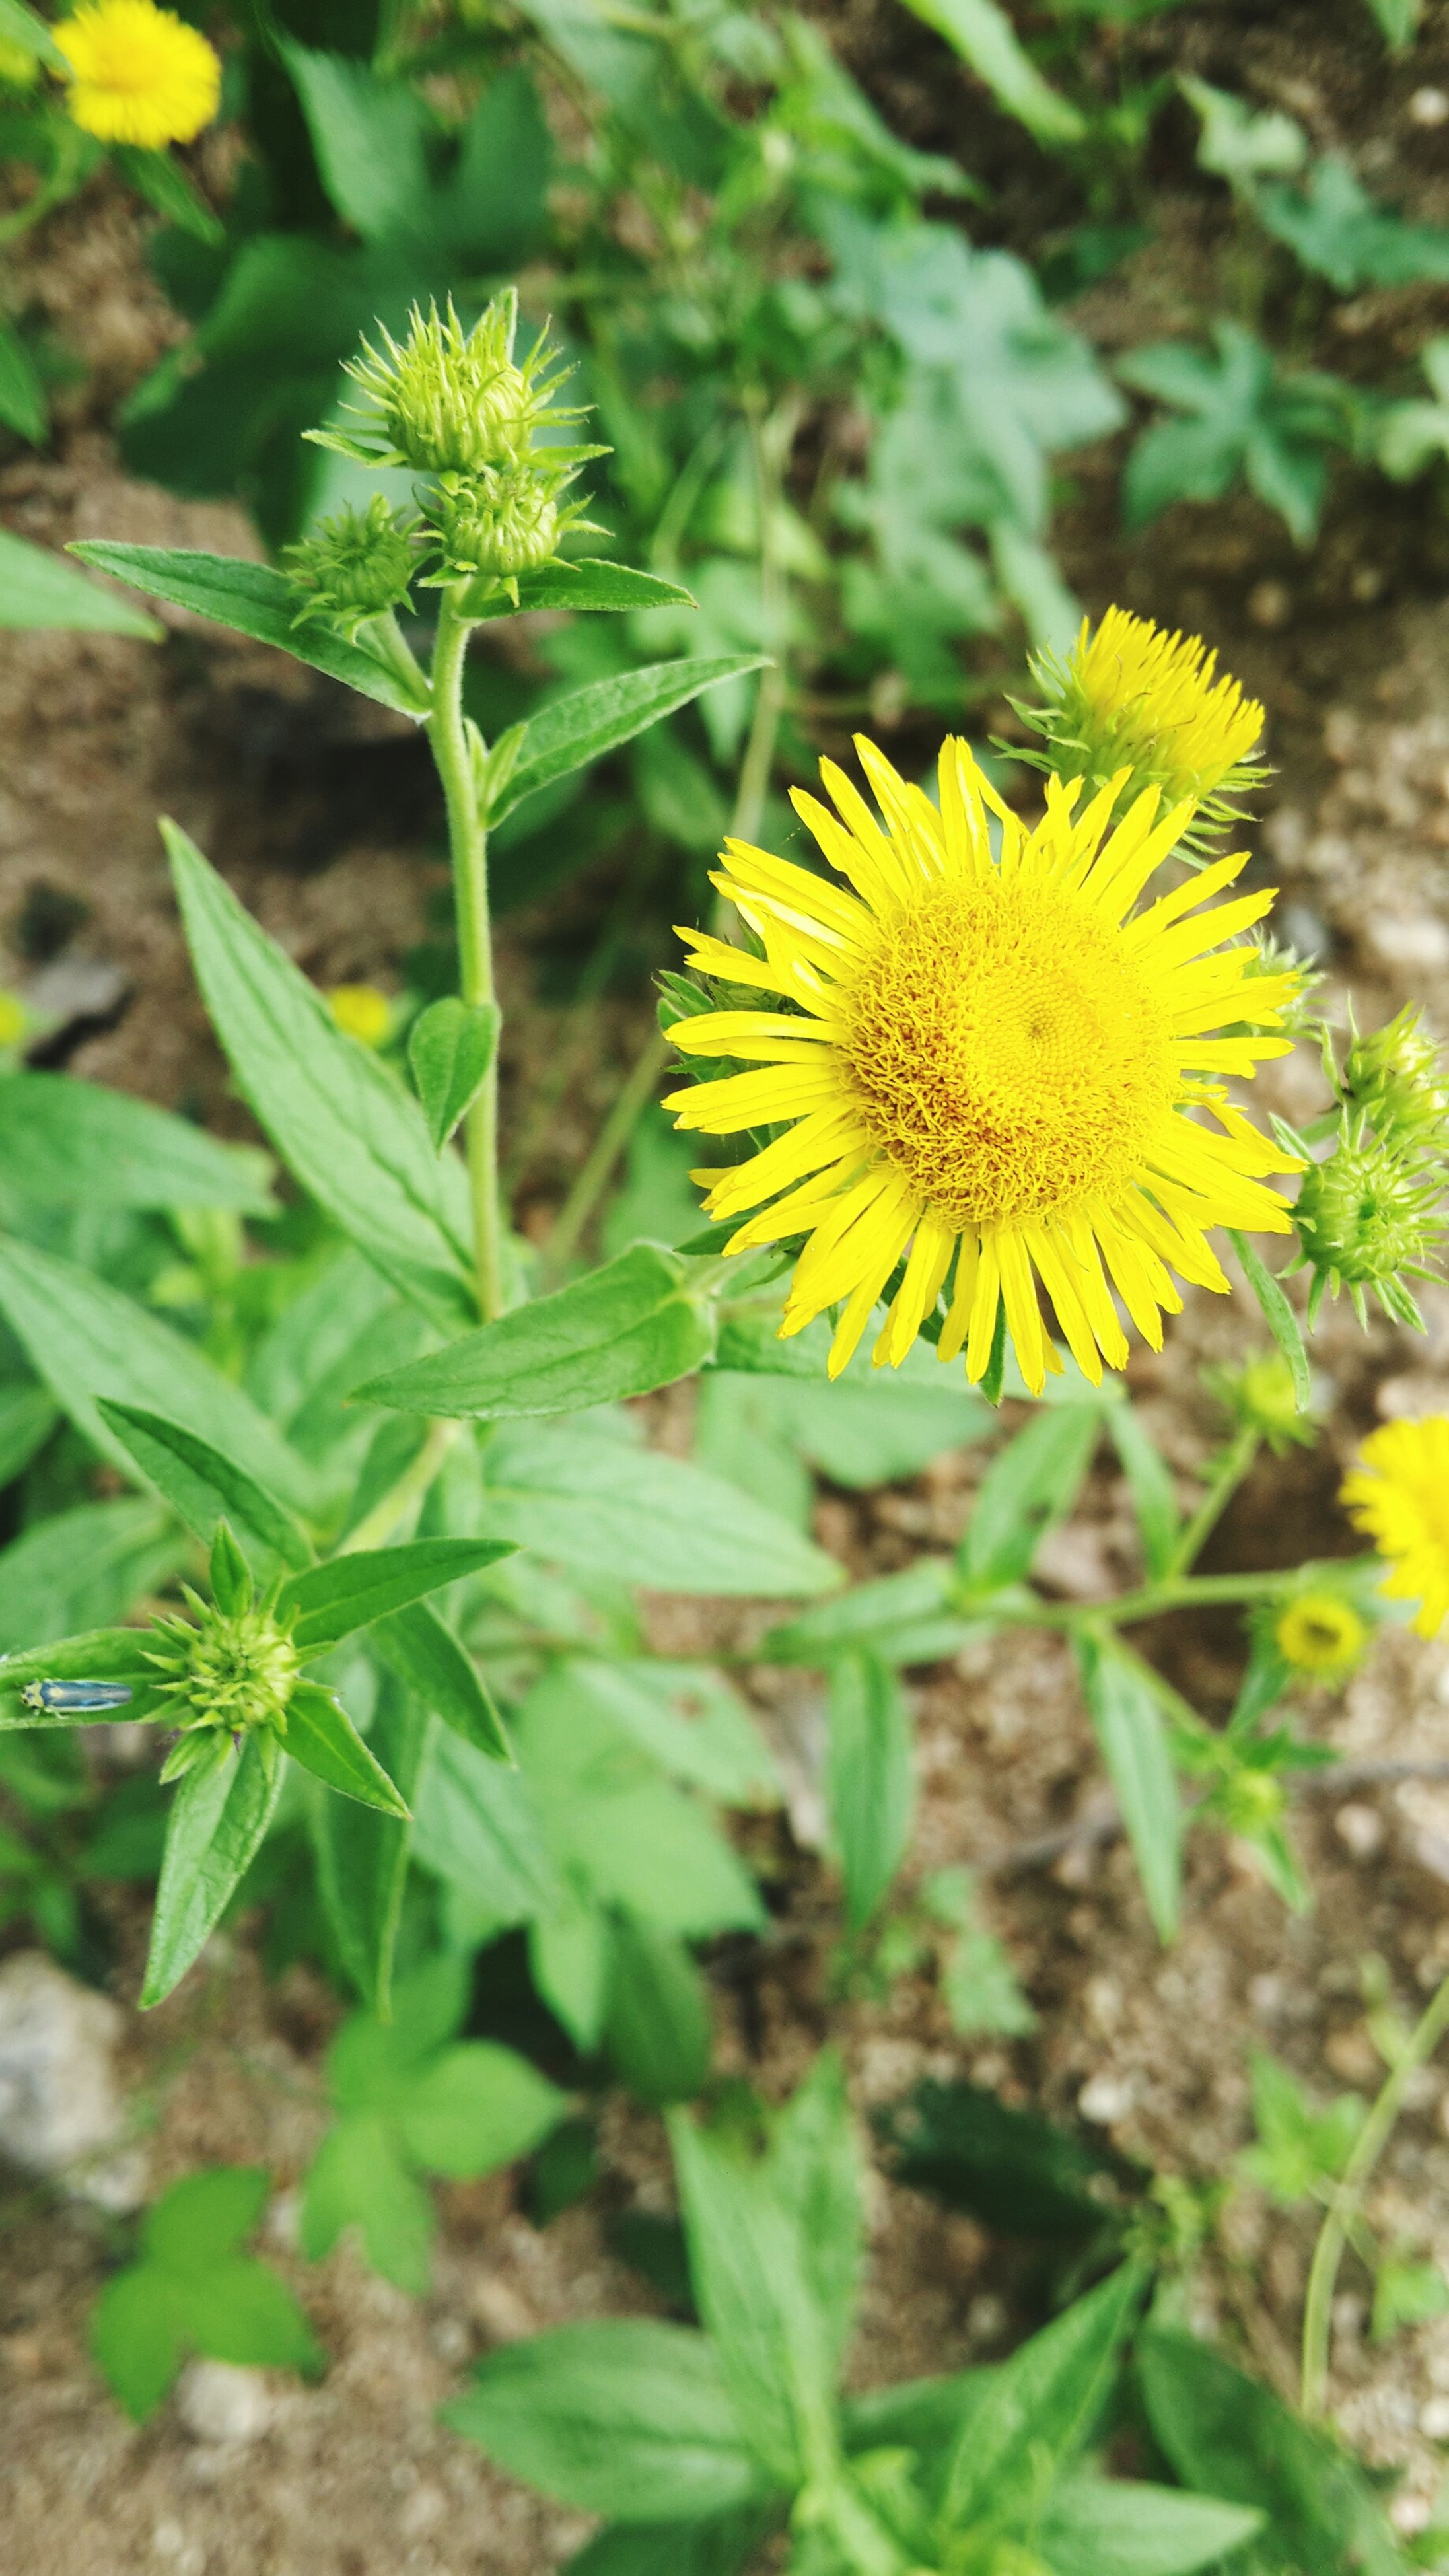 flower, insect, animals in the wild, one animal, animal themes, wildlife, yellow, fragility, petal, growth, freshness, focus on foreground, pollination, plant, flower head, beauty in nature, nature, close-up, bee, symbiotic relationship